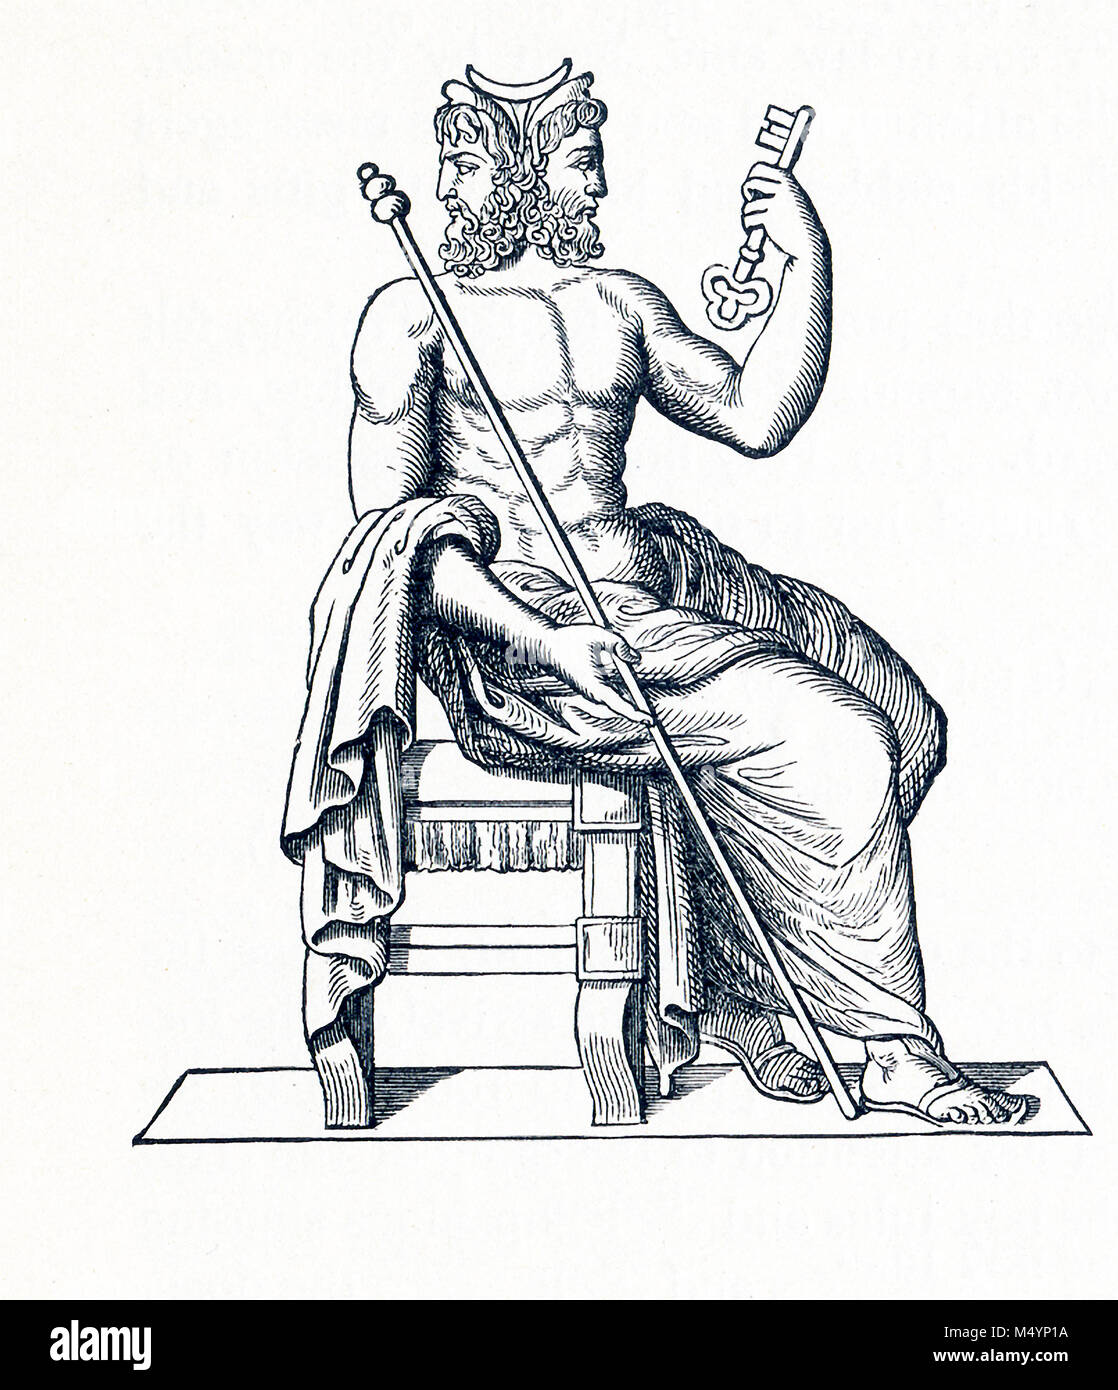 The statue here represents Janus, the god of beginnings. The Romans depicted Janus with two heads, one looking forward Stock Photo